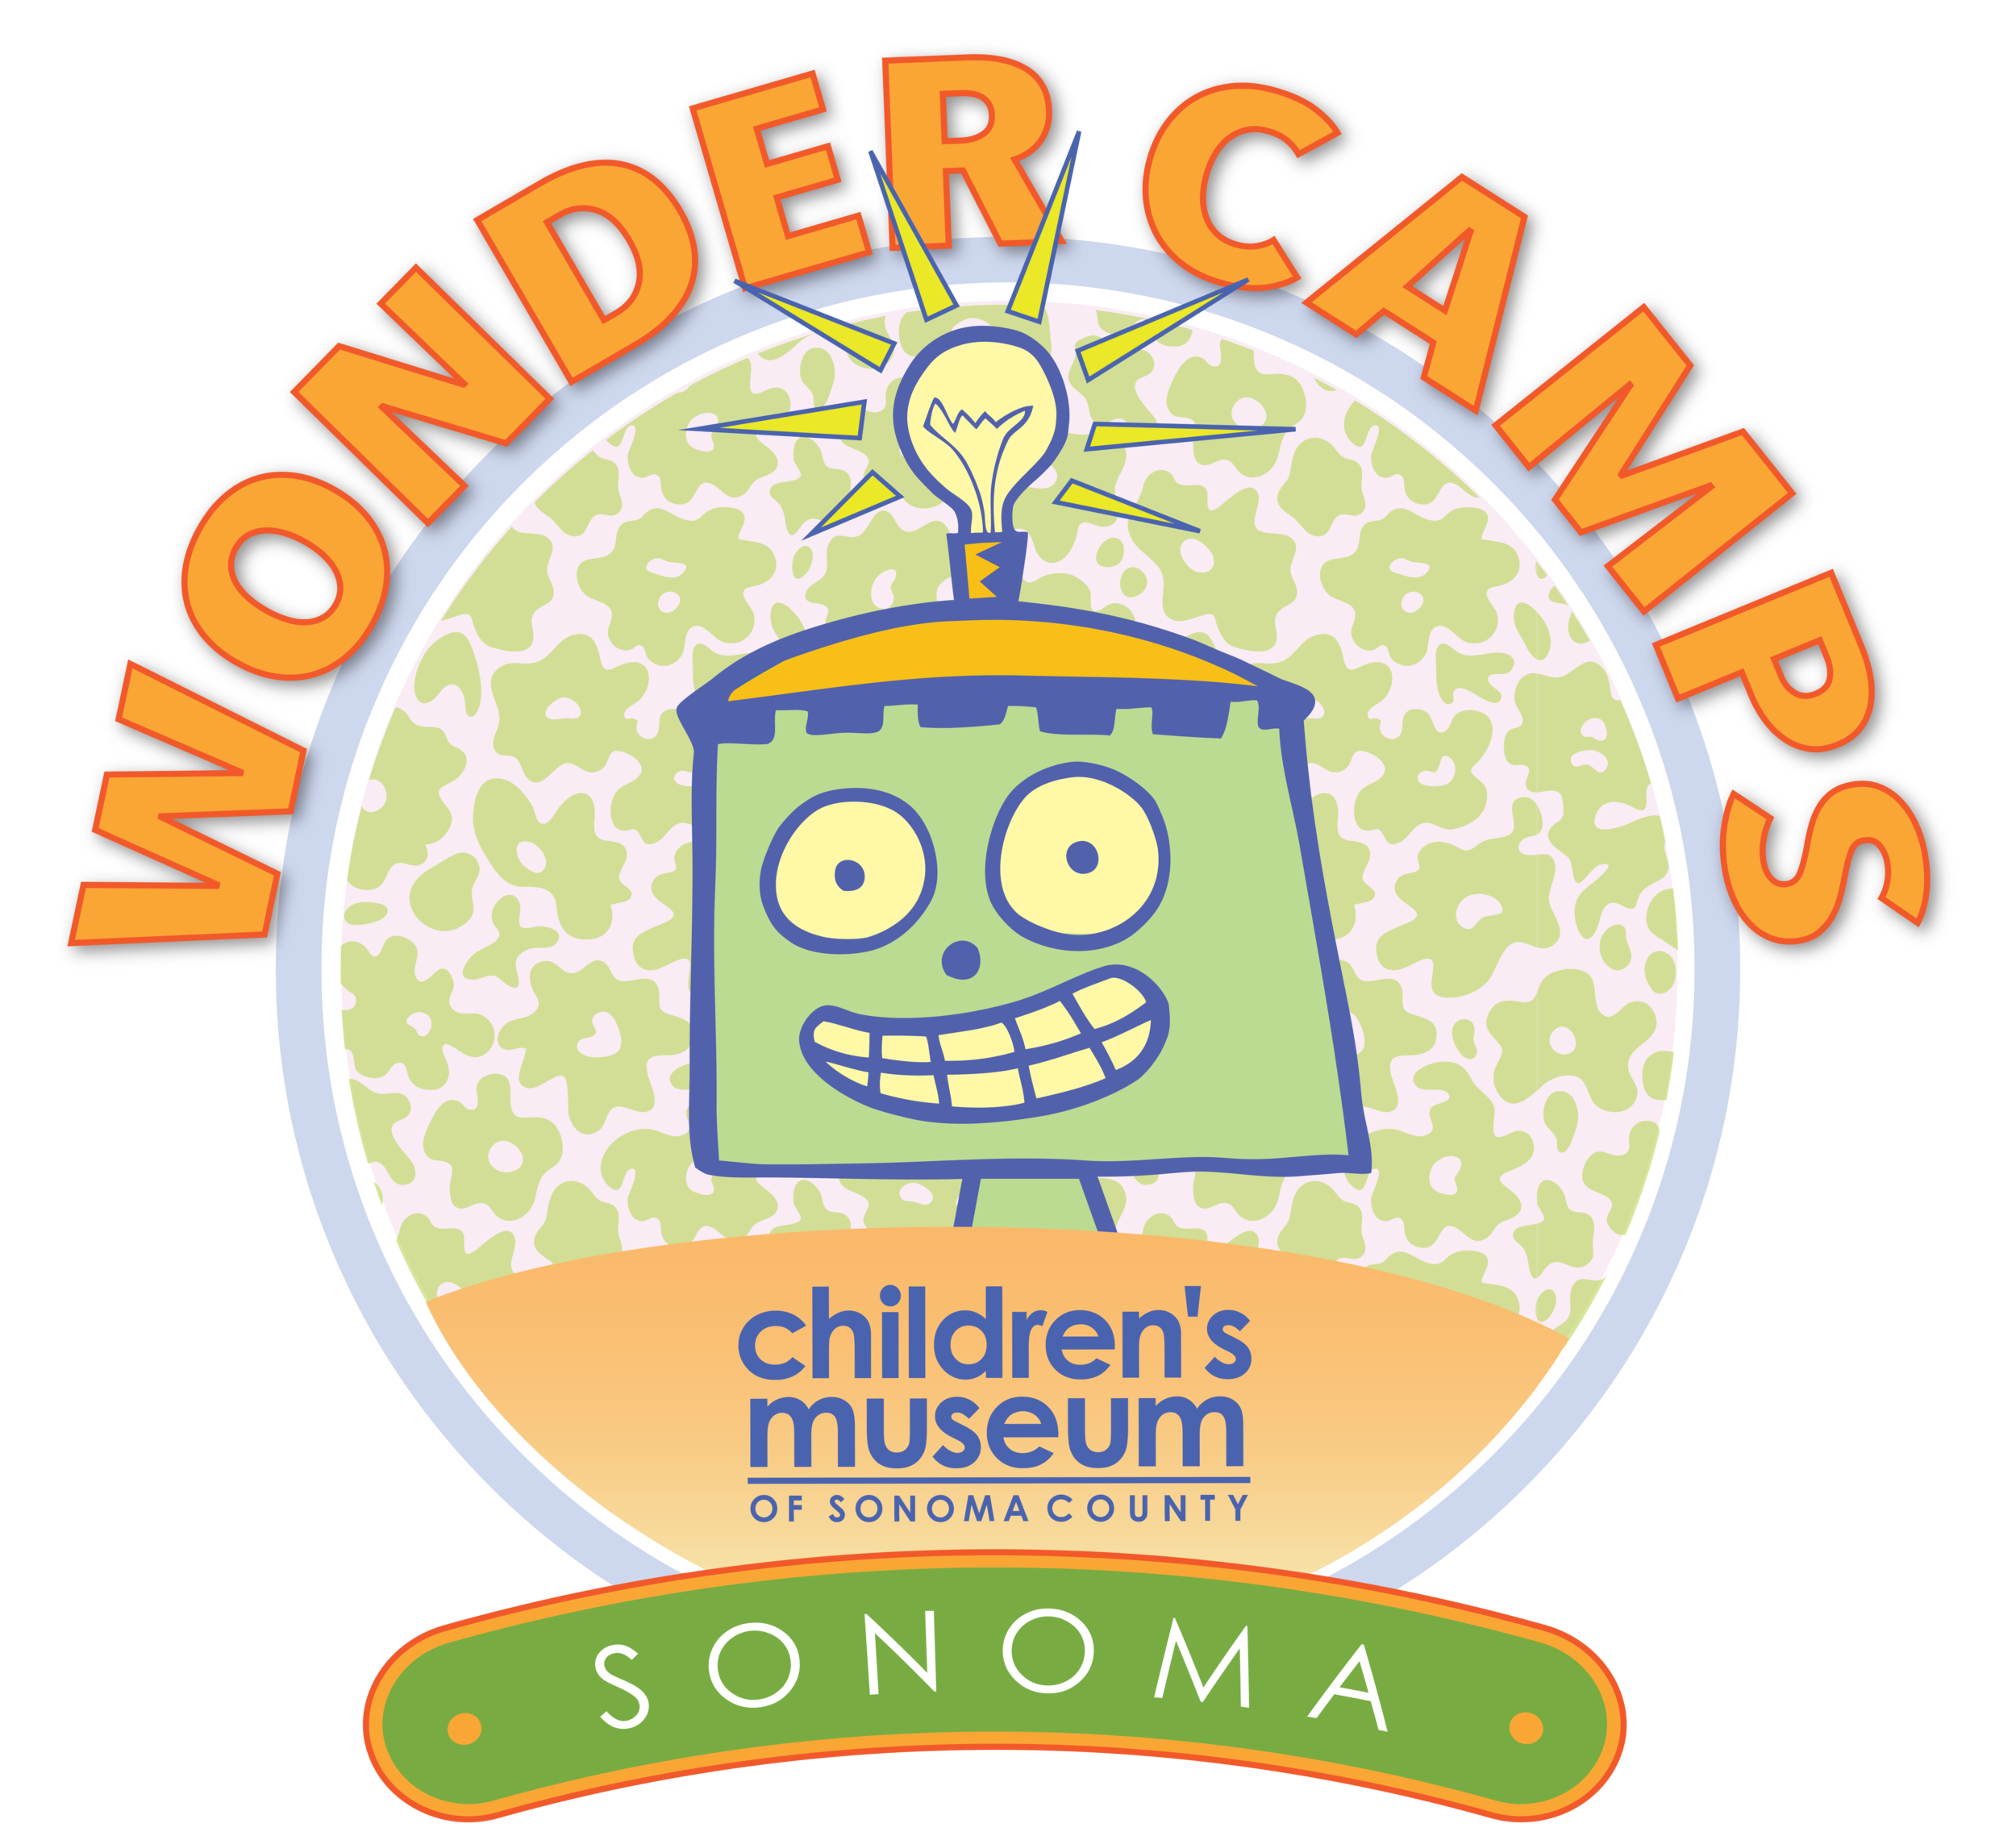 SUMMER WONDER CAMP LOGO SONOMA V2 010919.png